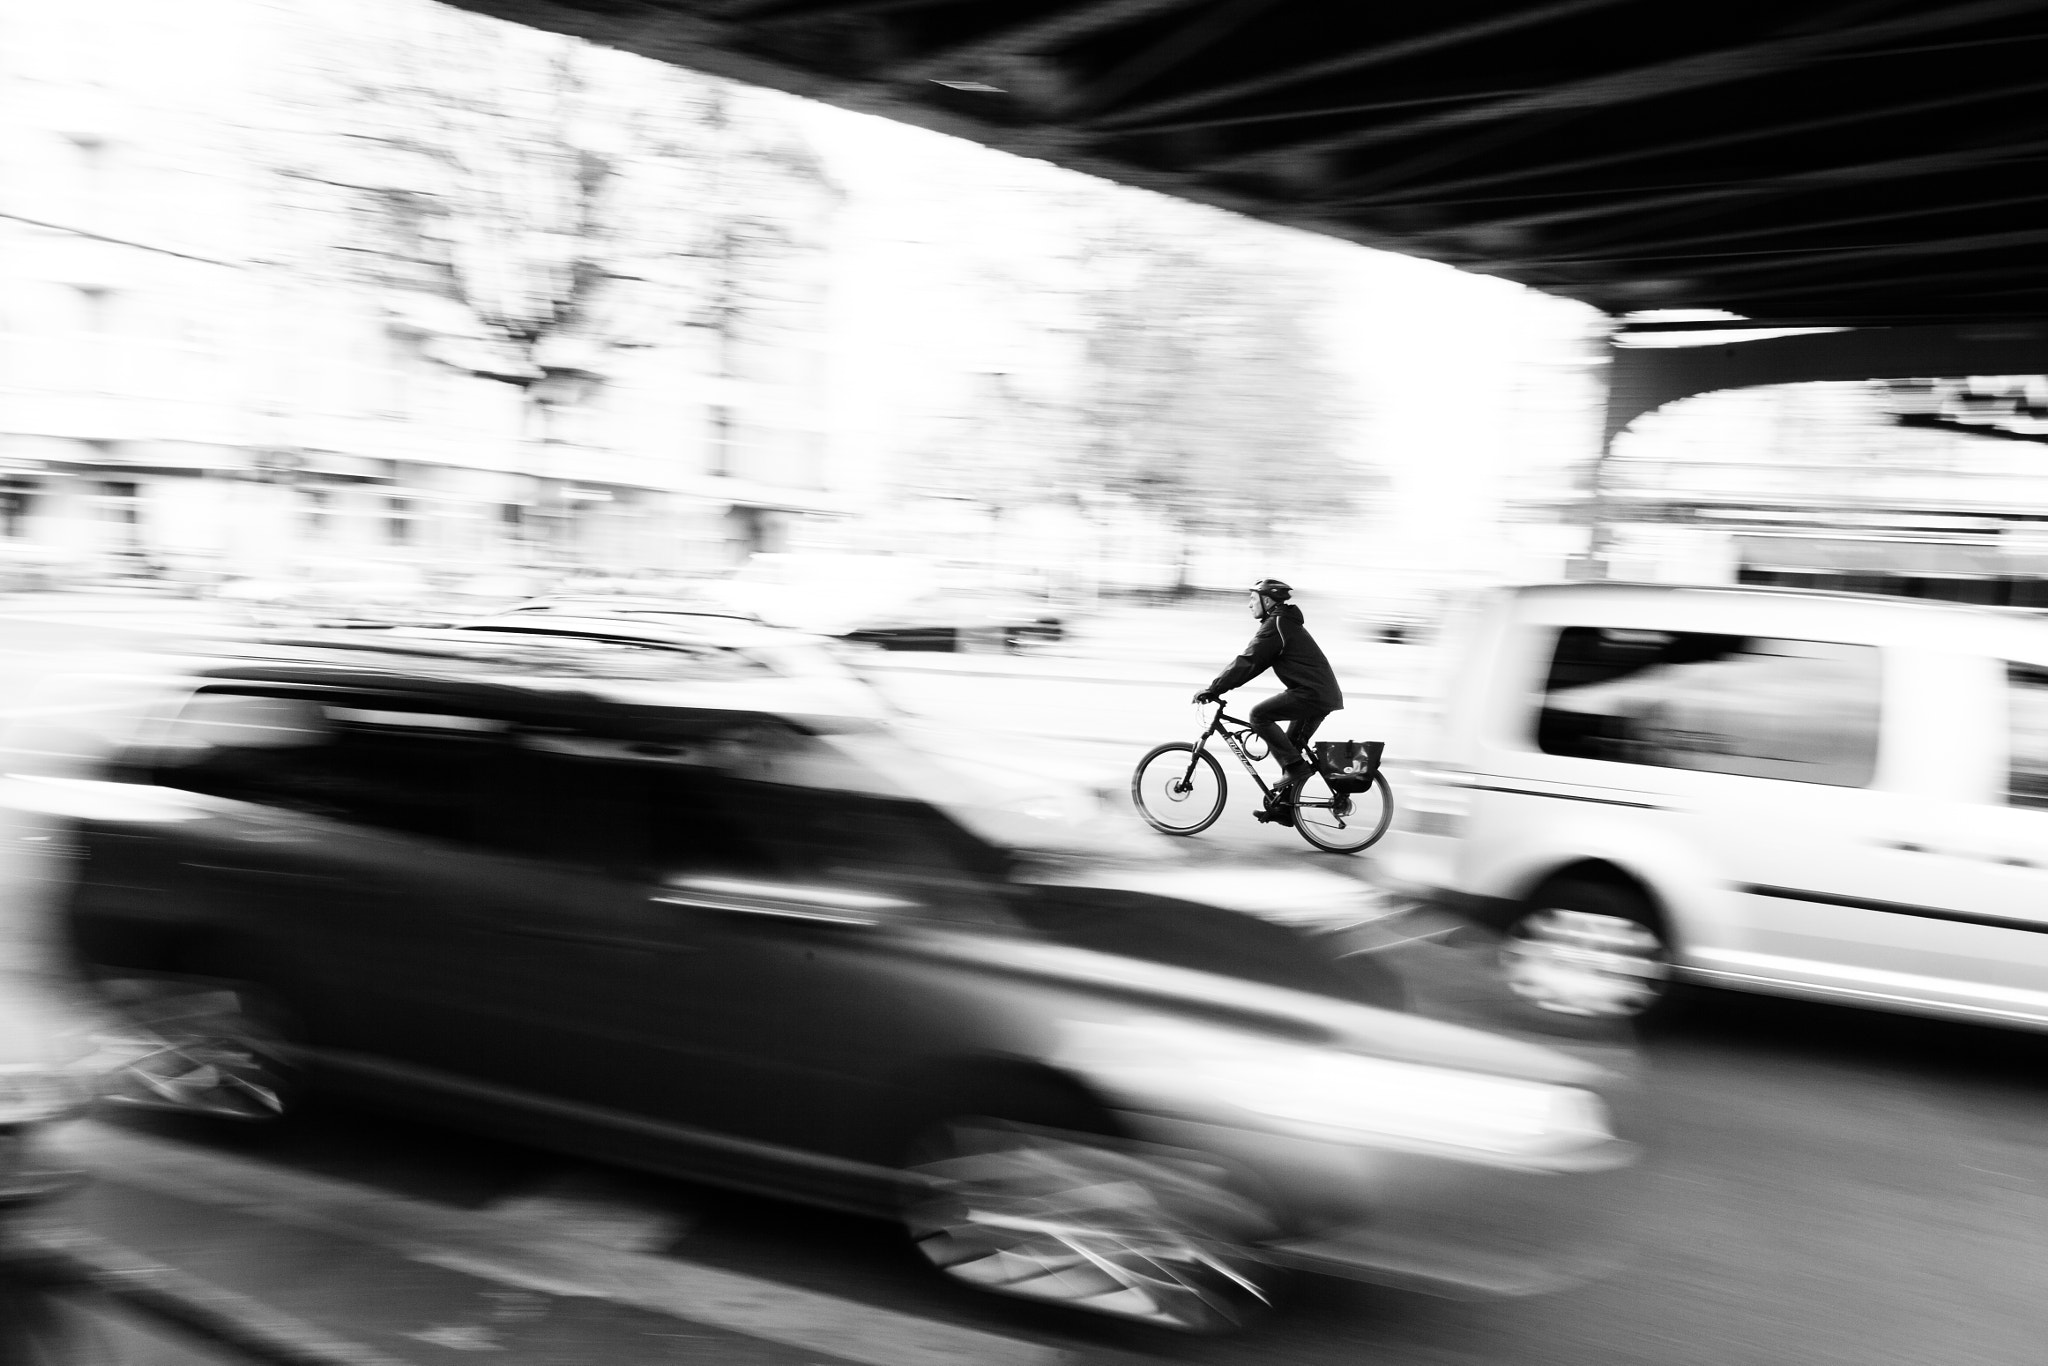 Photograph speed of the city by Christian Müller on 500px